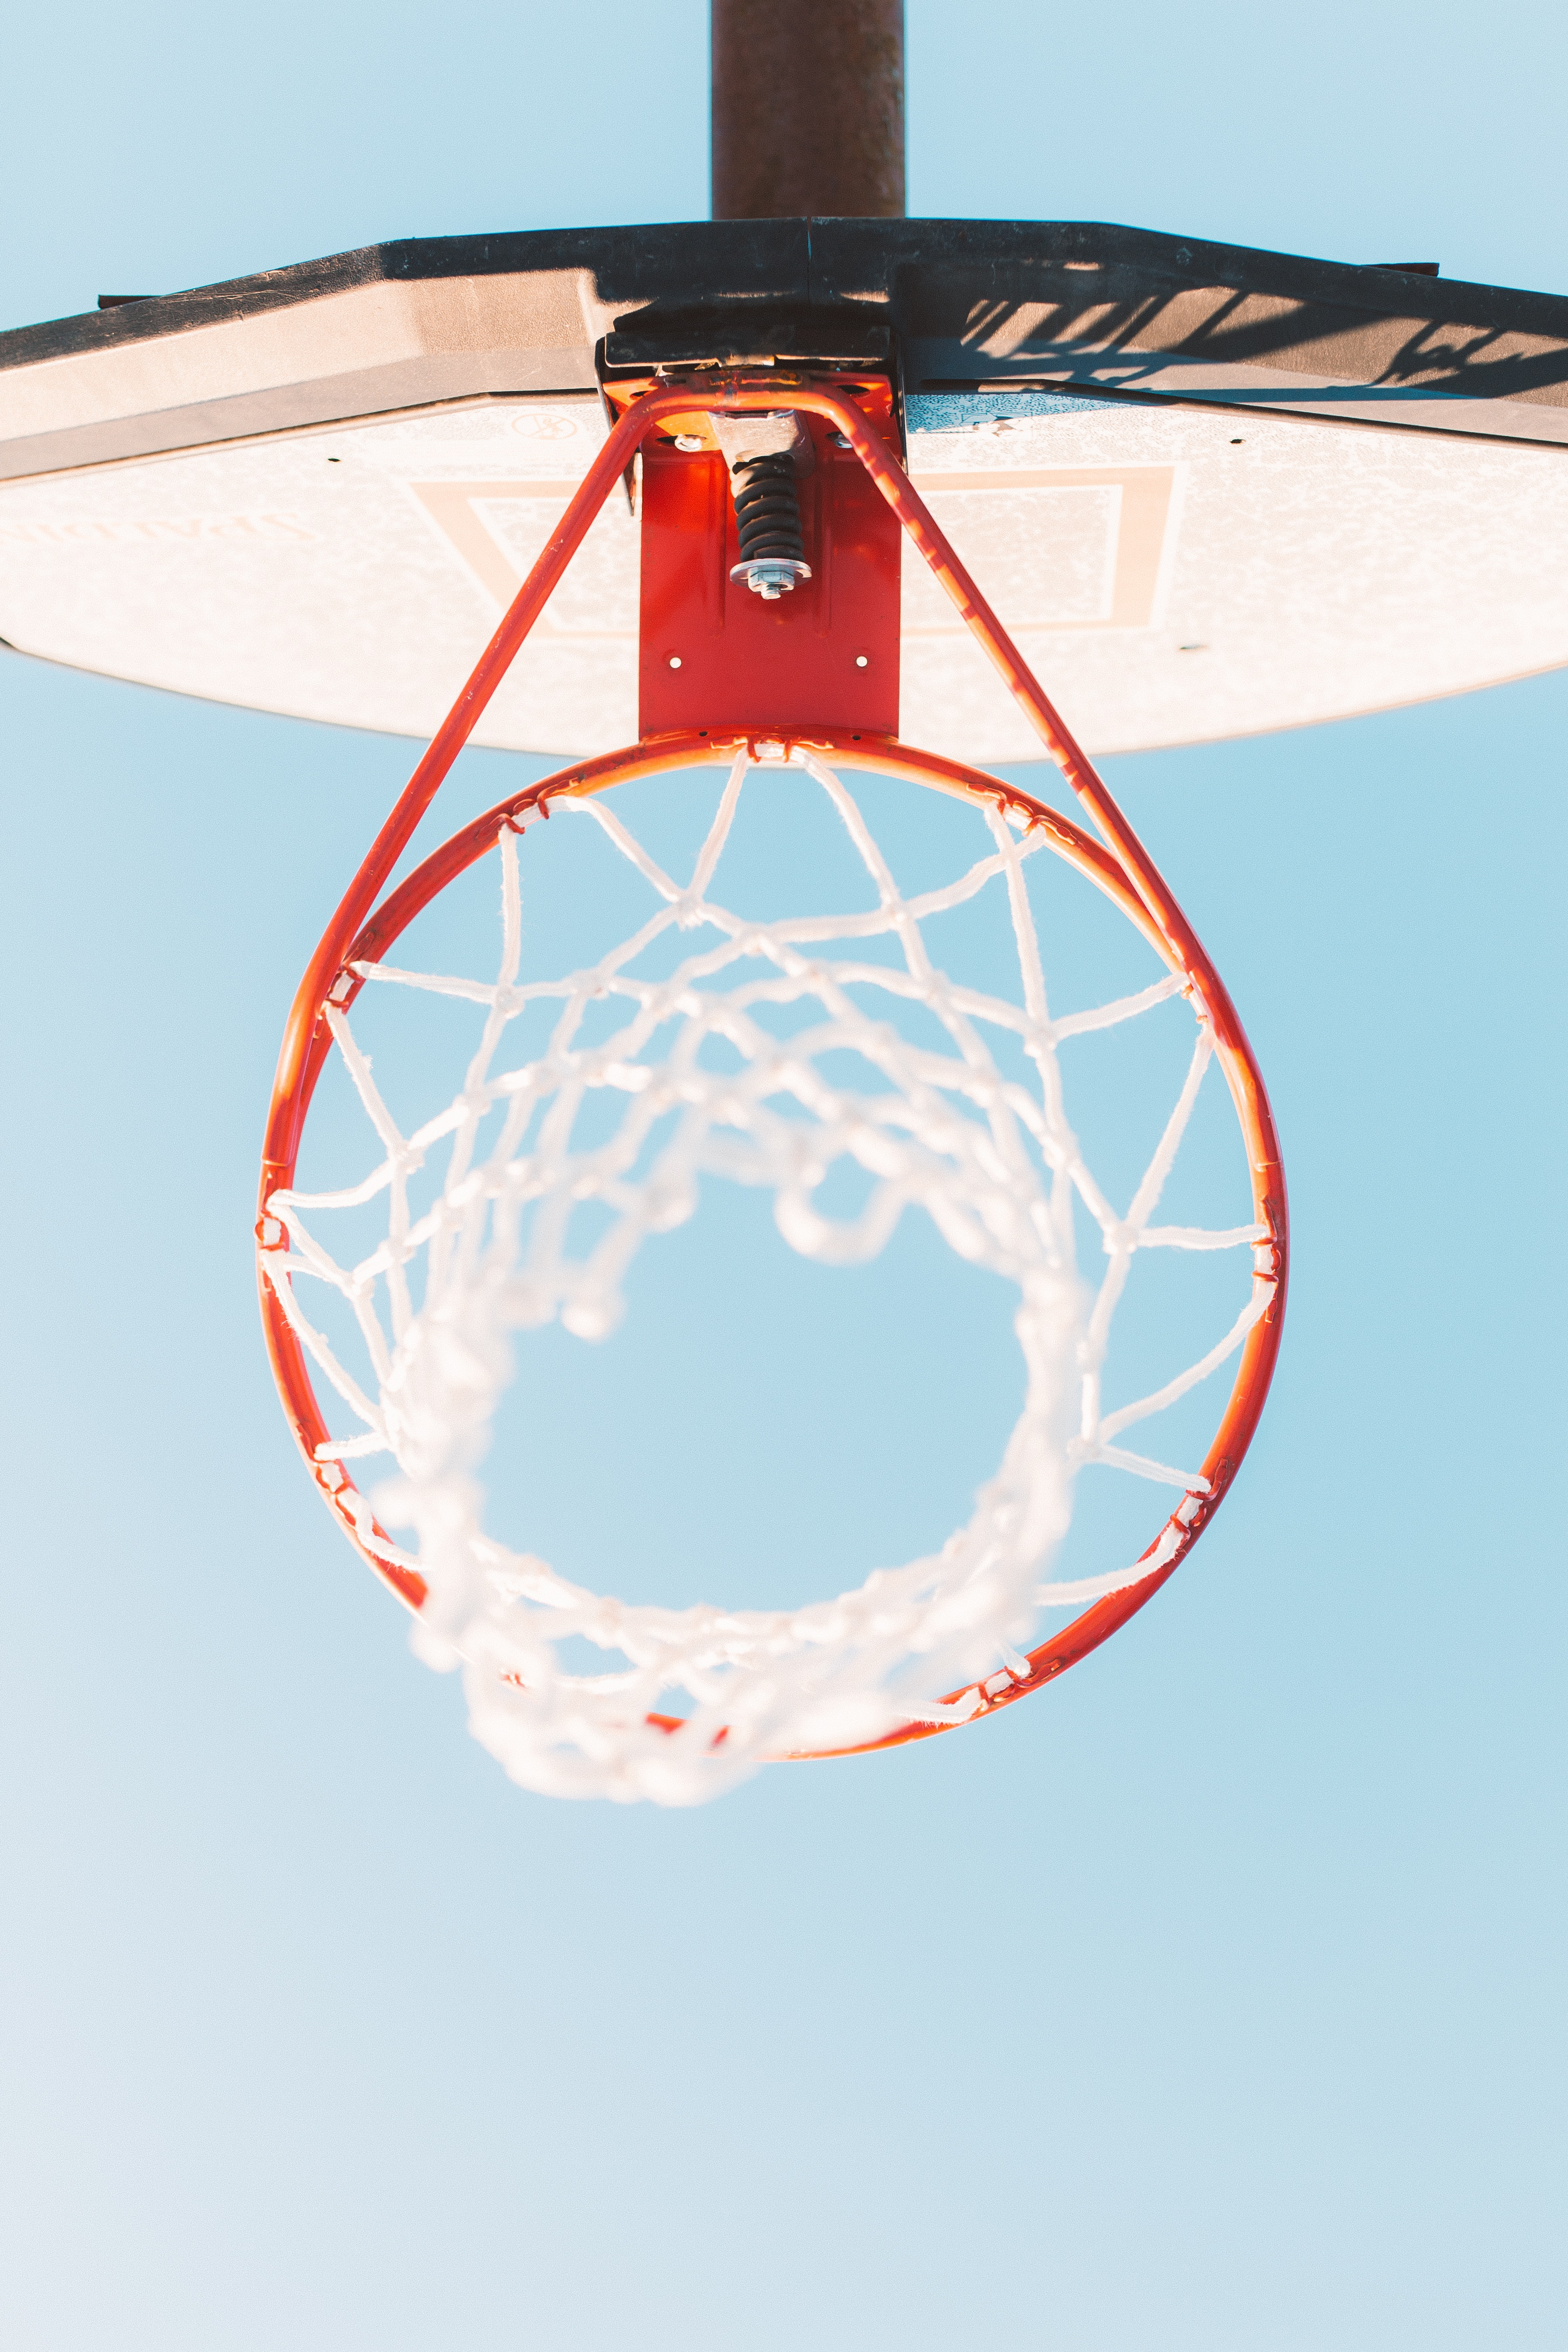 Photo taken under an outdoor basketball hoop